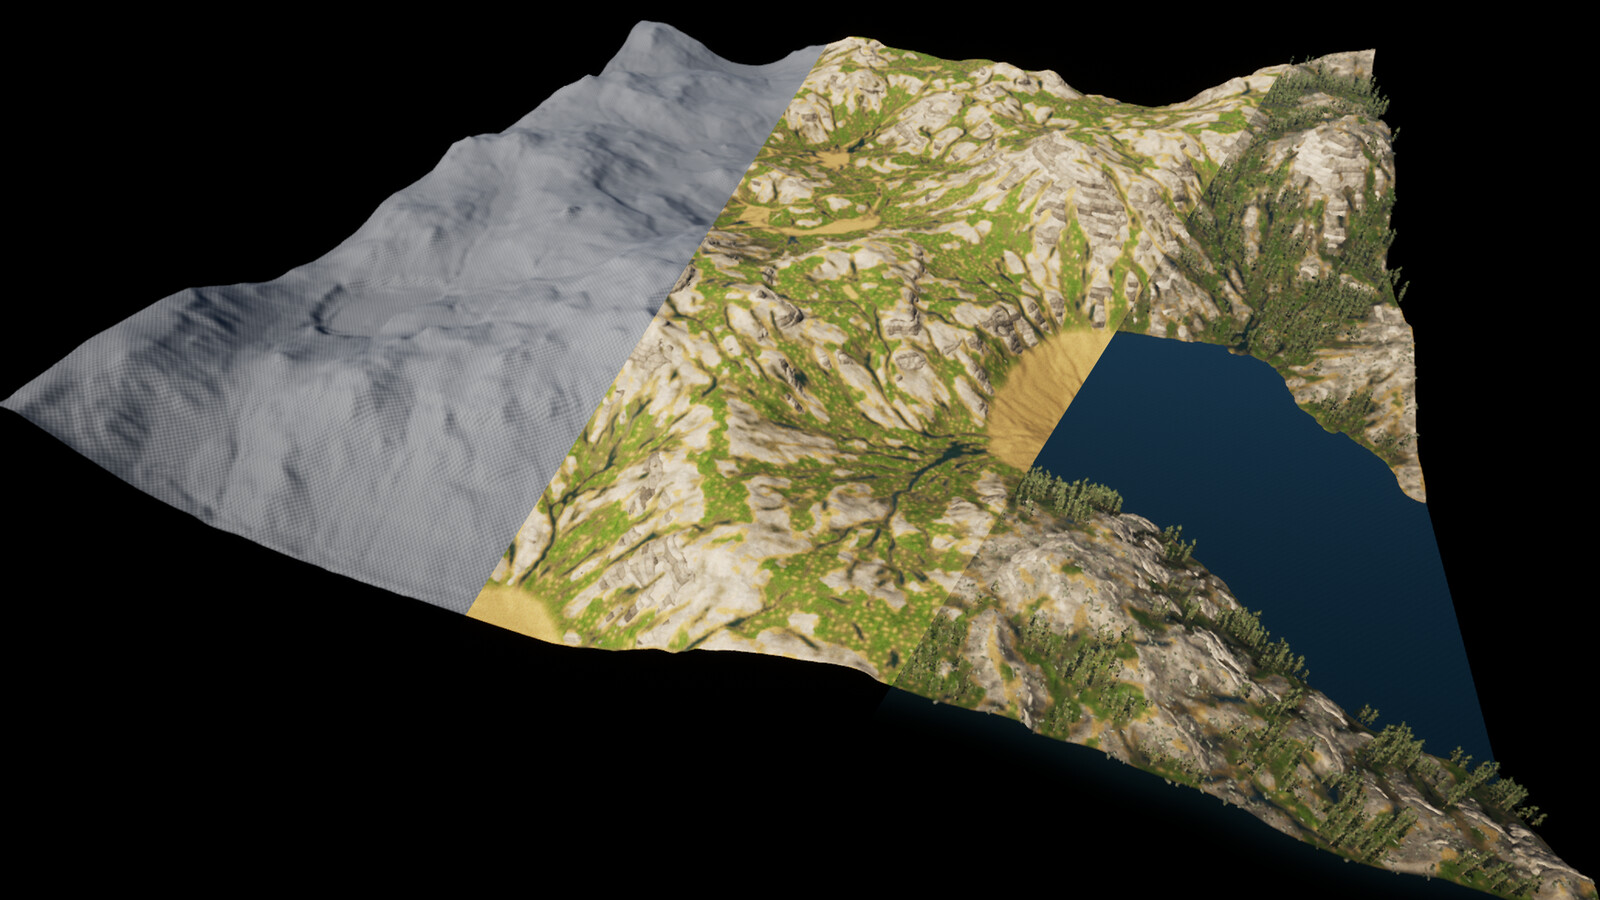 Basic landscape in UE4 / with a landscape material / with water, detail mask n foliage.